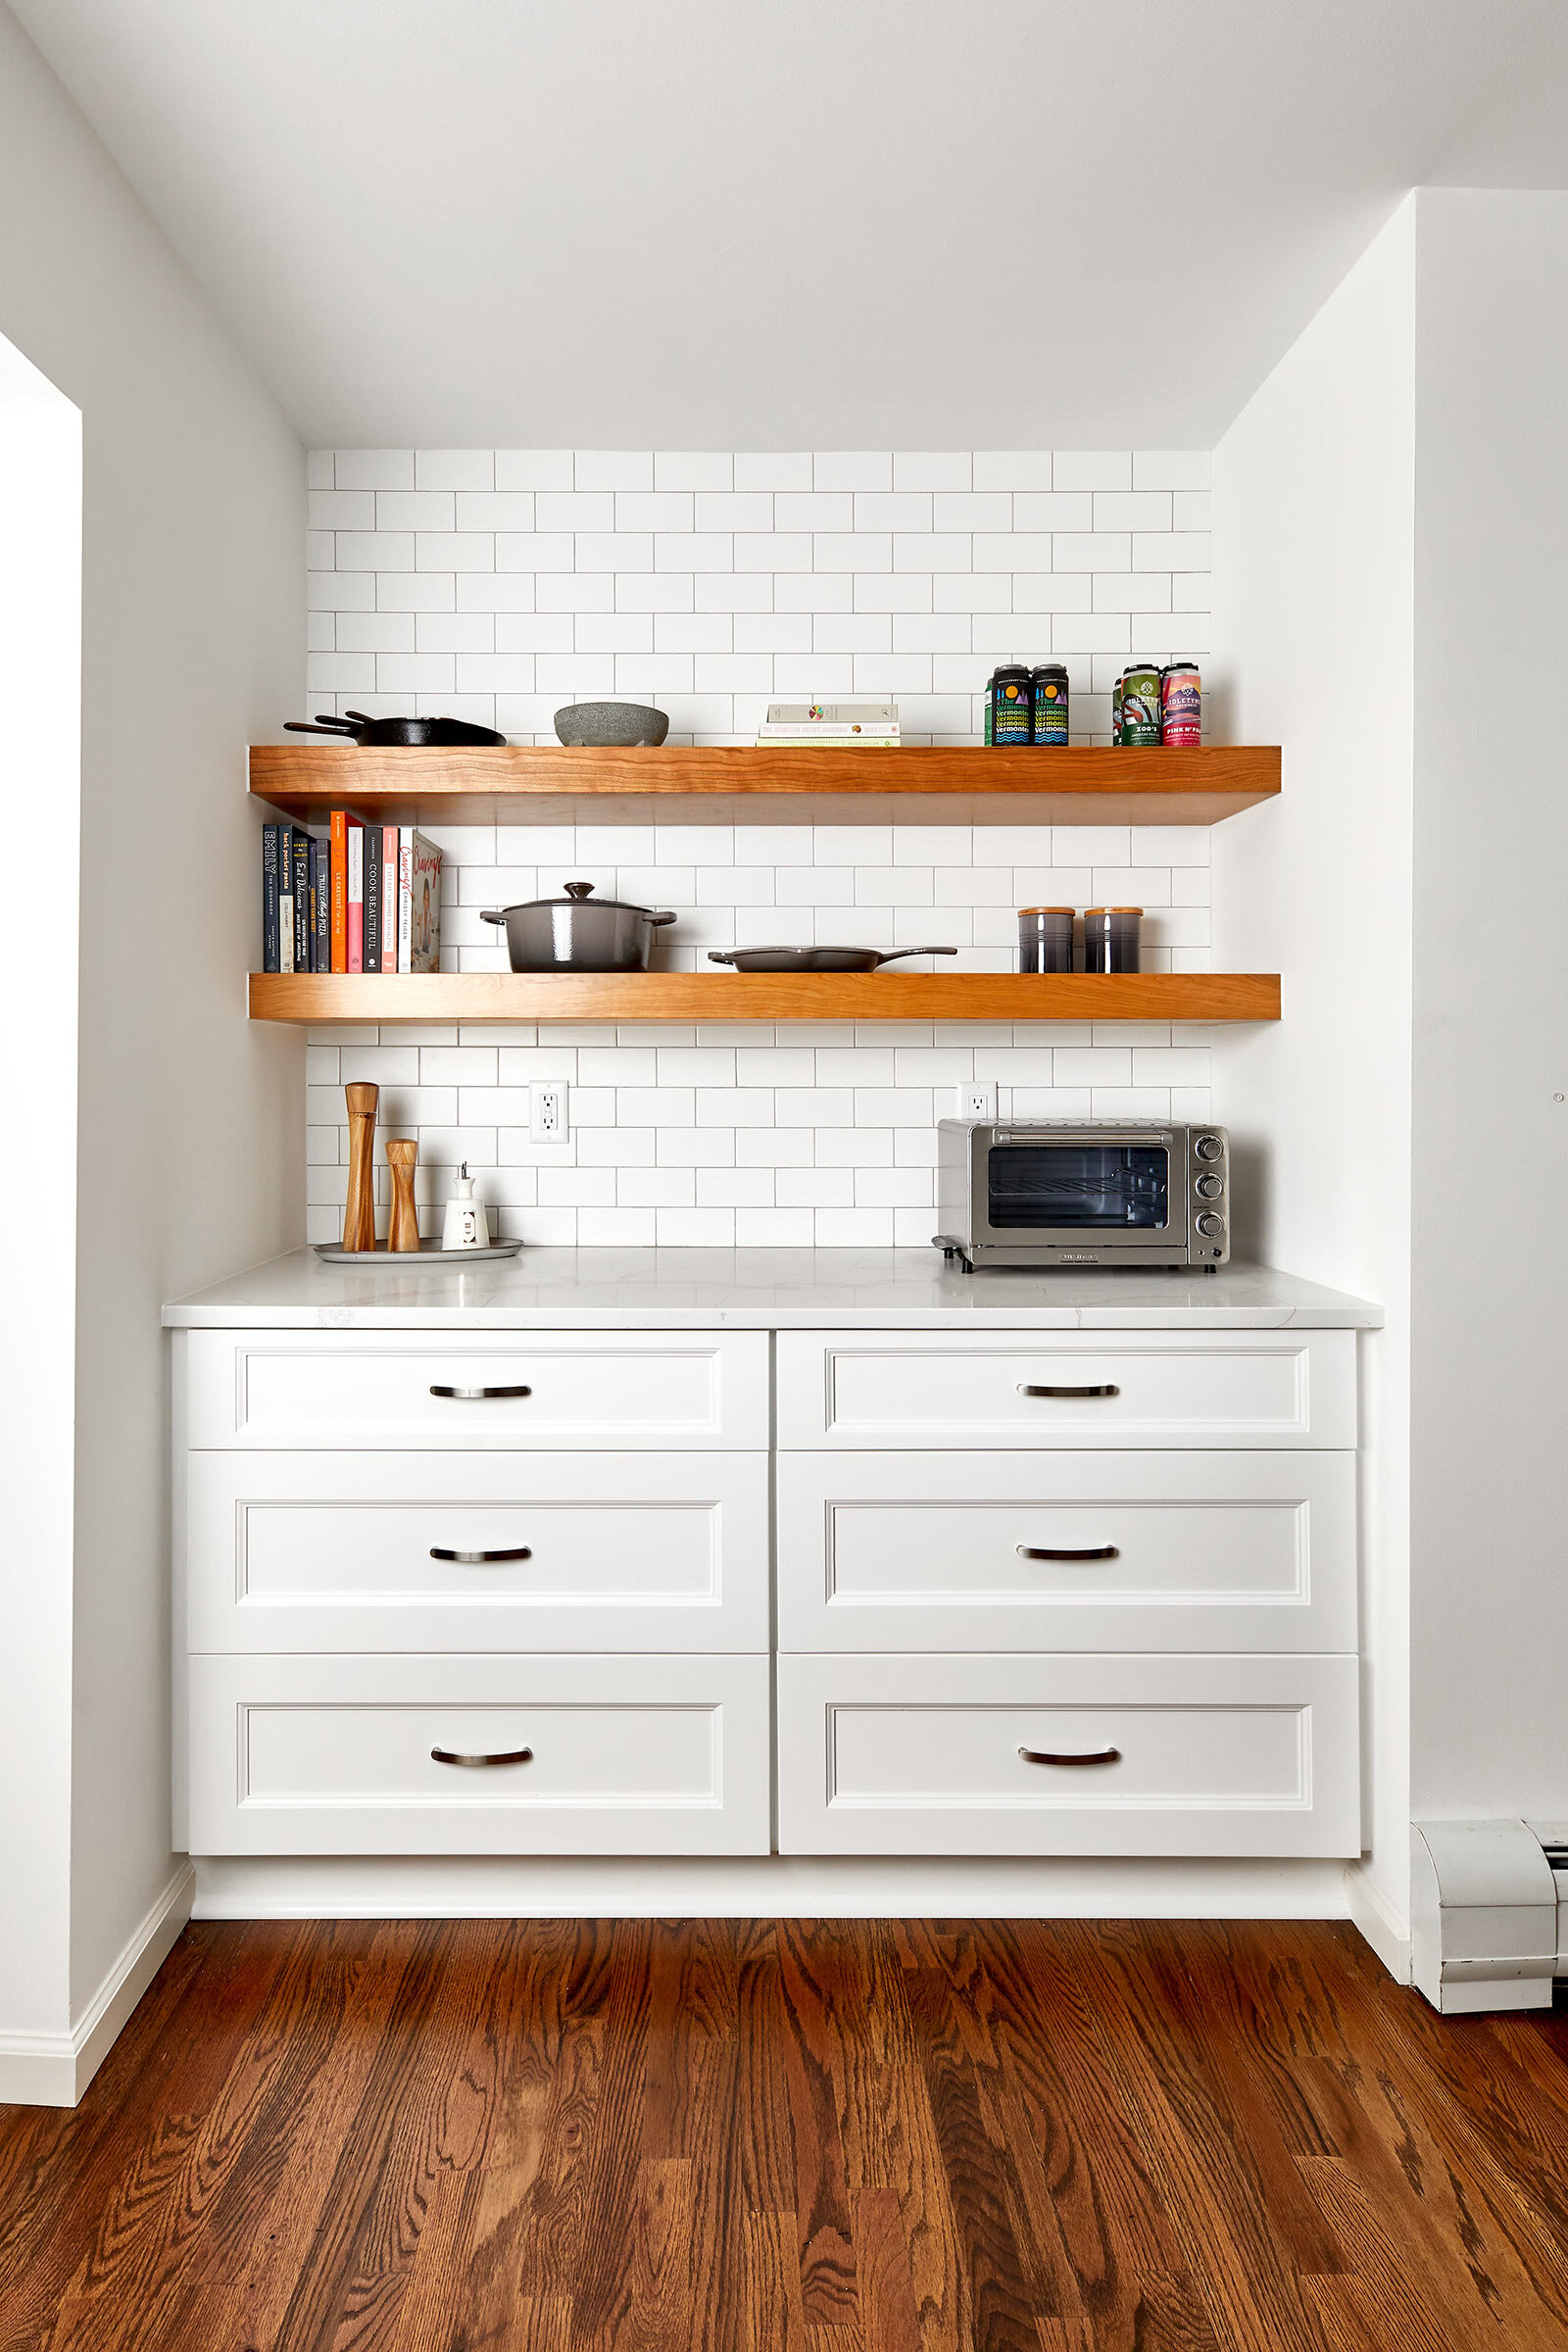 thompson-fine-home-renovations-kitchen-subway-tile-shelf.jpg